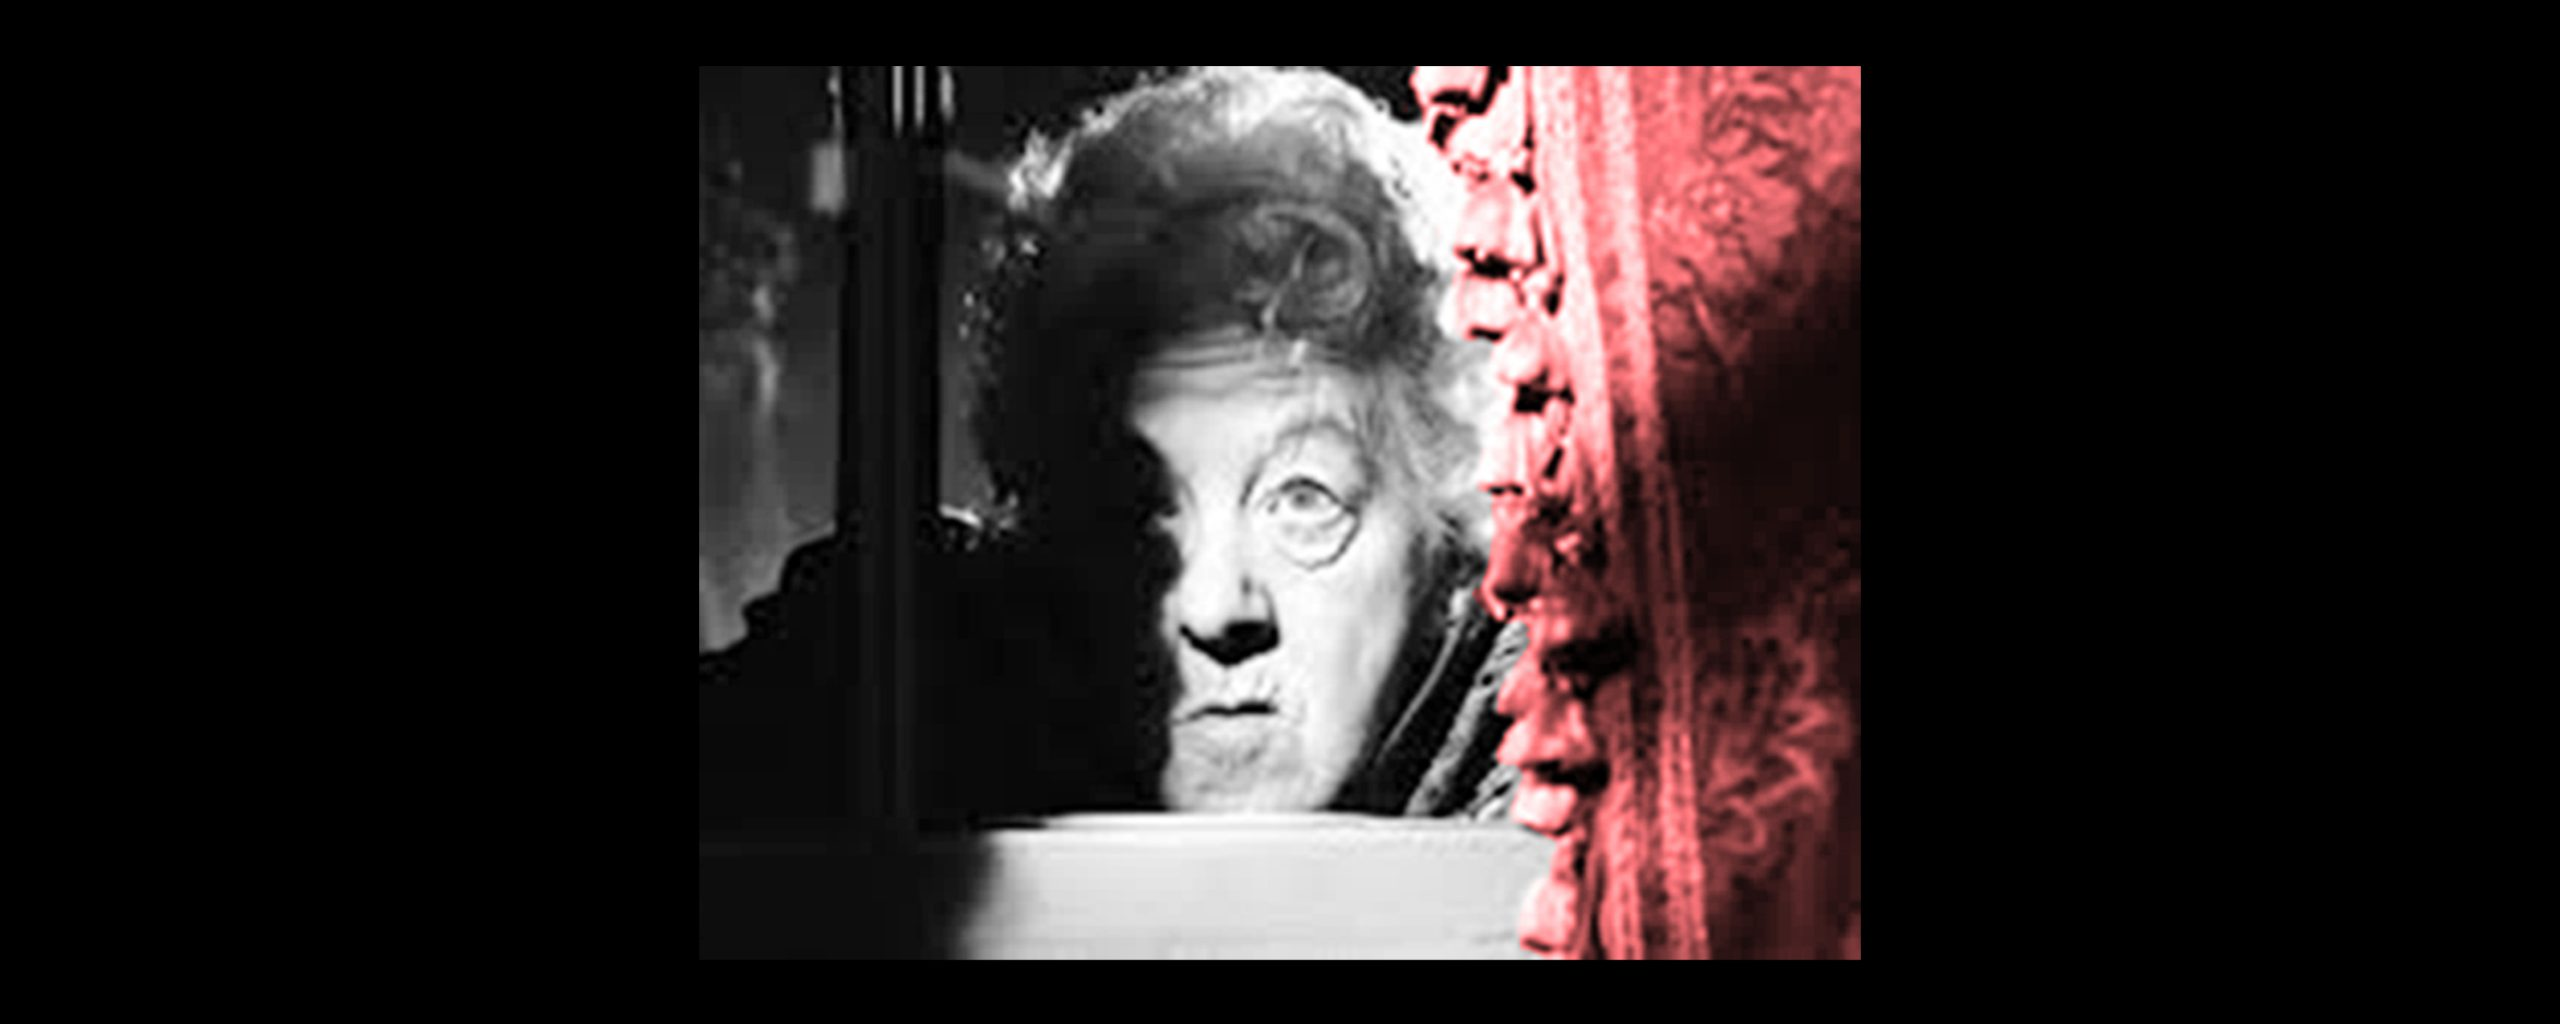 Miss Marple played by Margaret Rutherford peeping from behind her lace curtain